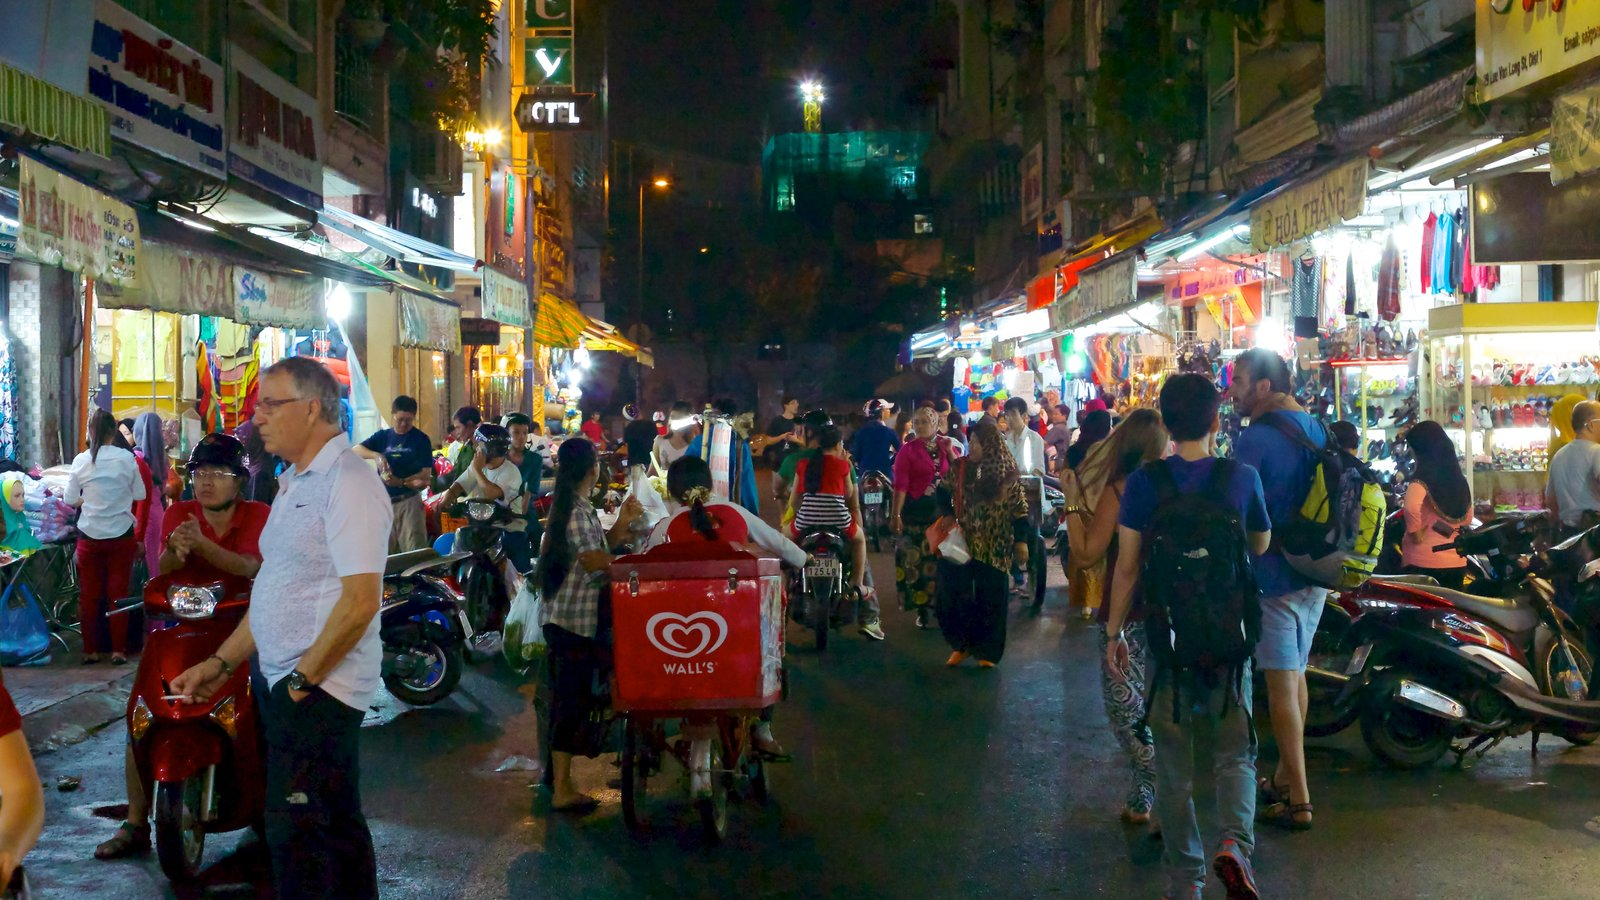 Ben Thanh Market which includes markets, street scenes and a city